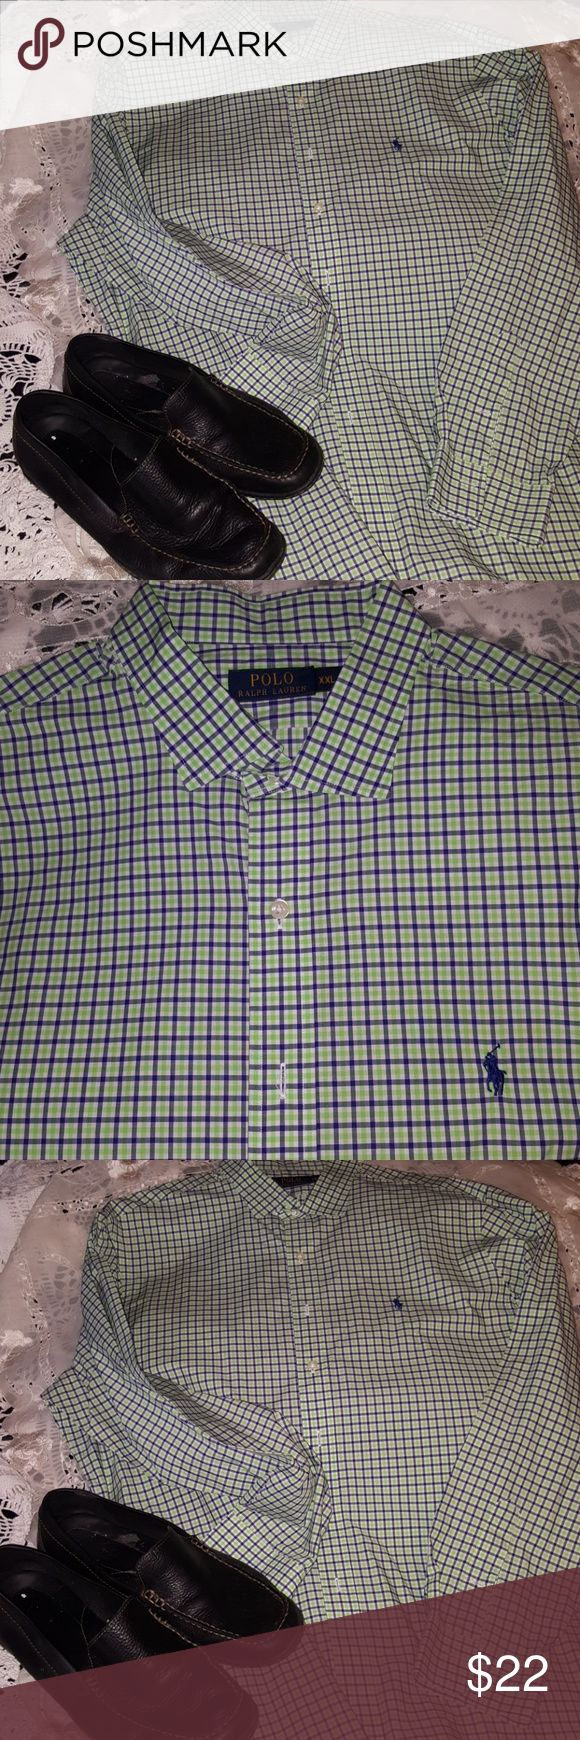 Polo Raph Lauren xxl green purple plaid shirt Worn once and dry cleaned Ralph Lauren Shirts Casual Button Down Shirts